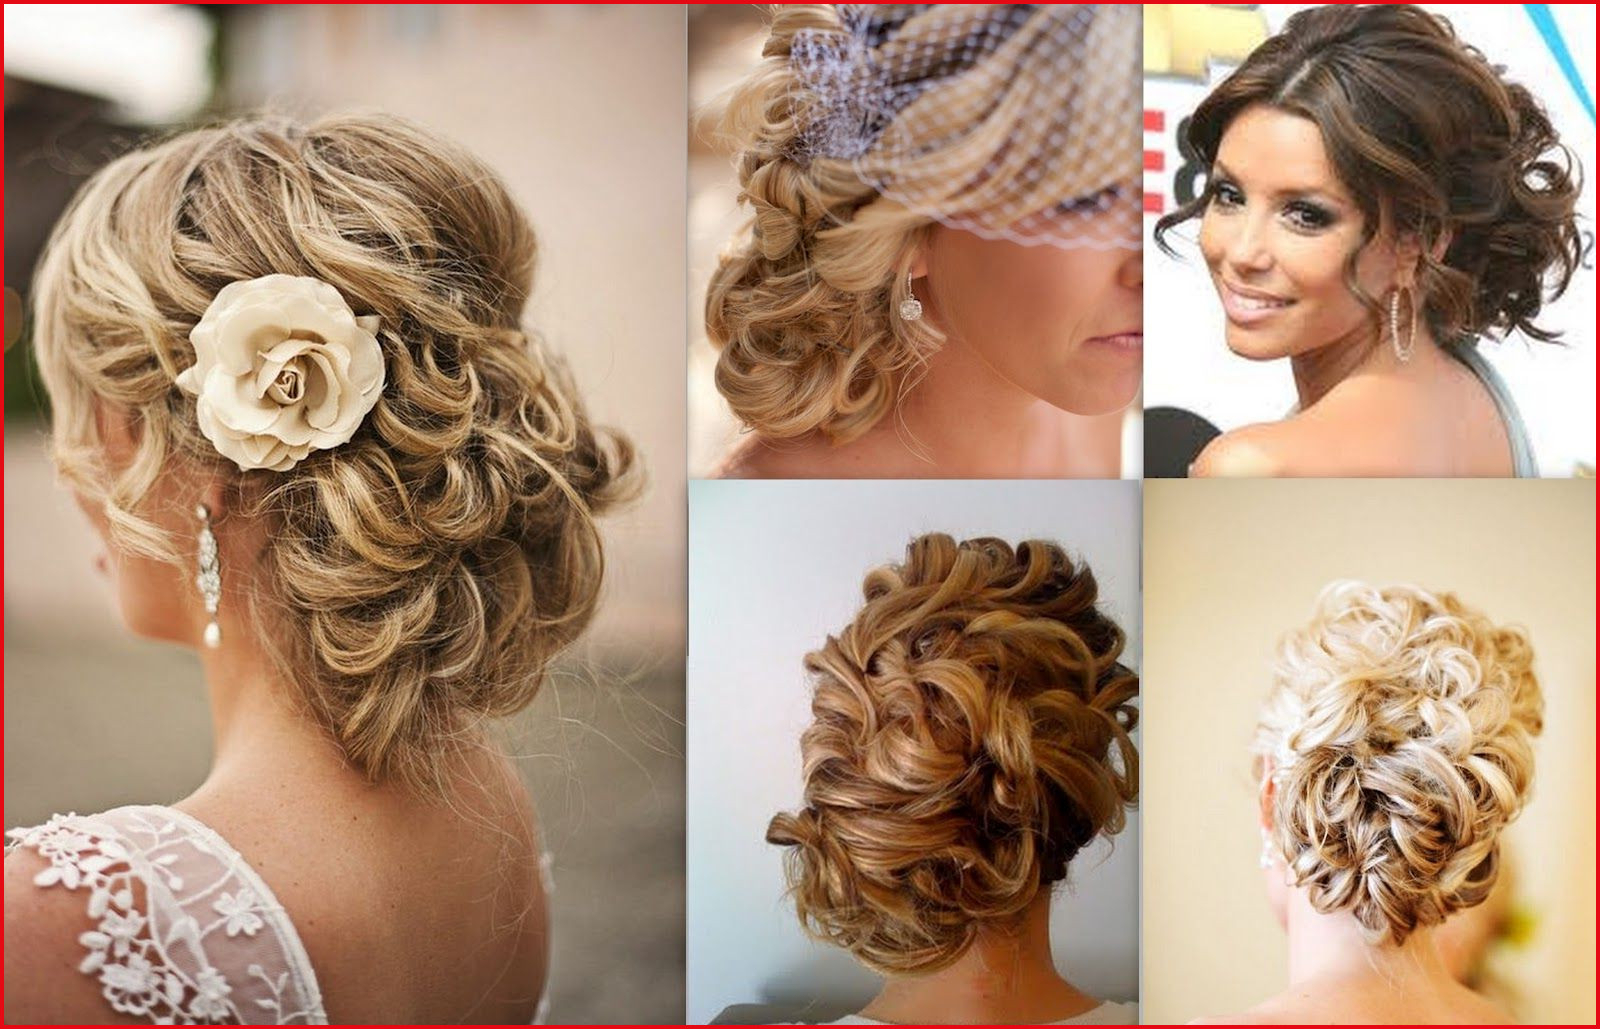 Bridal Hair Pulled To Side With Hairpiece Messy Side Bun Wedding Inside Most Up To Date Messy Bun Prom Hairstyles With Long Side Pieces (View 11 of 20)